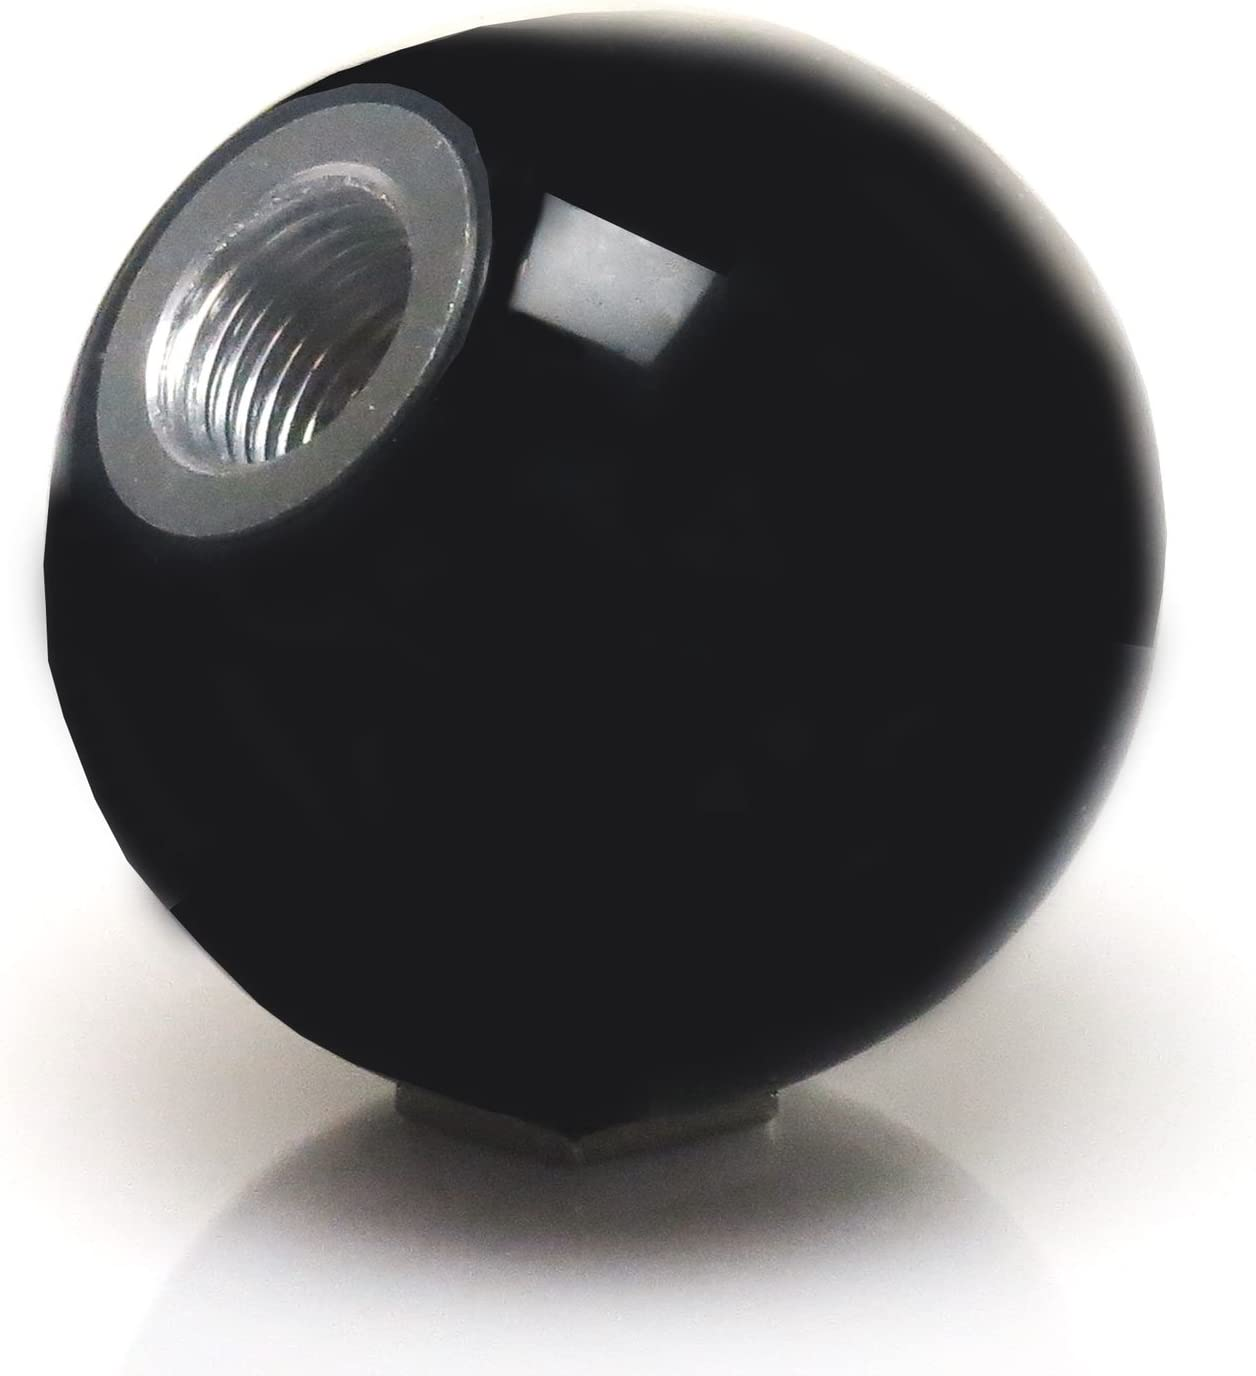 American Shifter 109712 Black Shift Knob with M16 x 1.5 Insert White 4 Stars